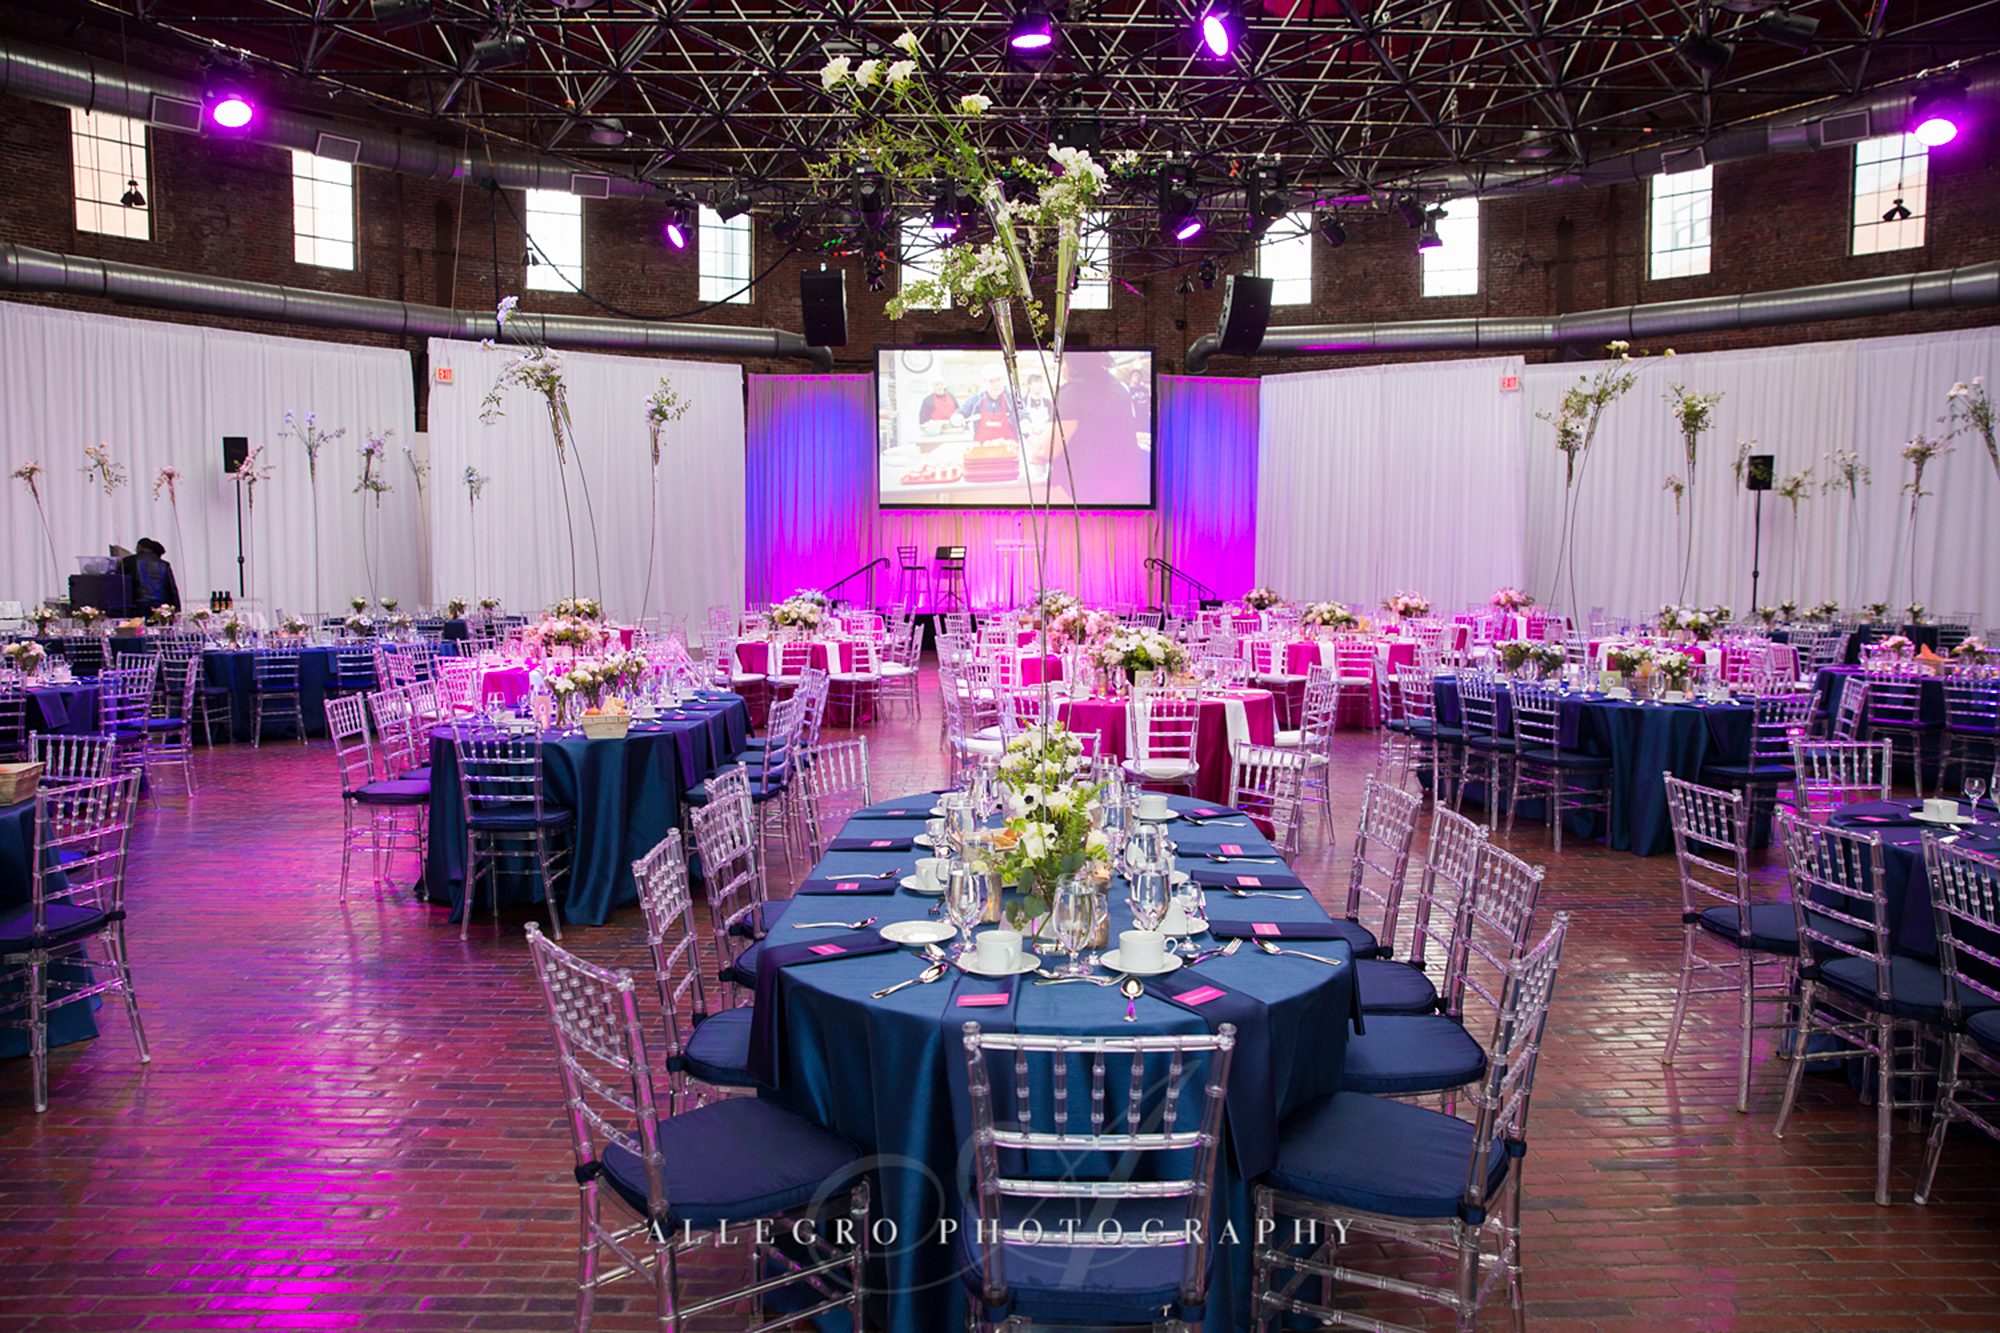 00_Rosies Place Gala Nonprofit_AE Events.jpg